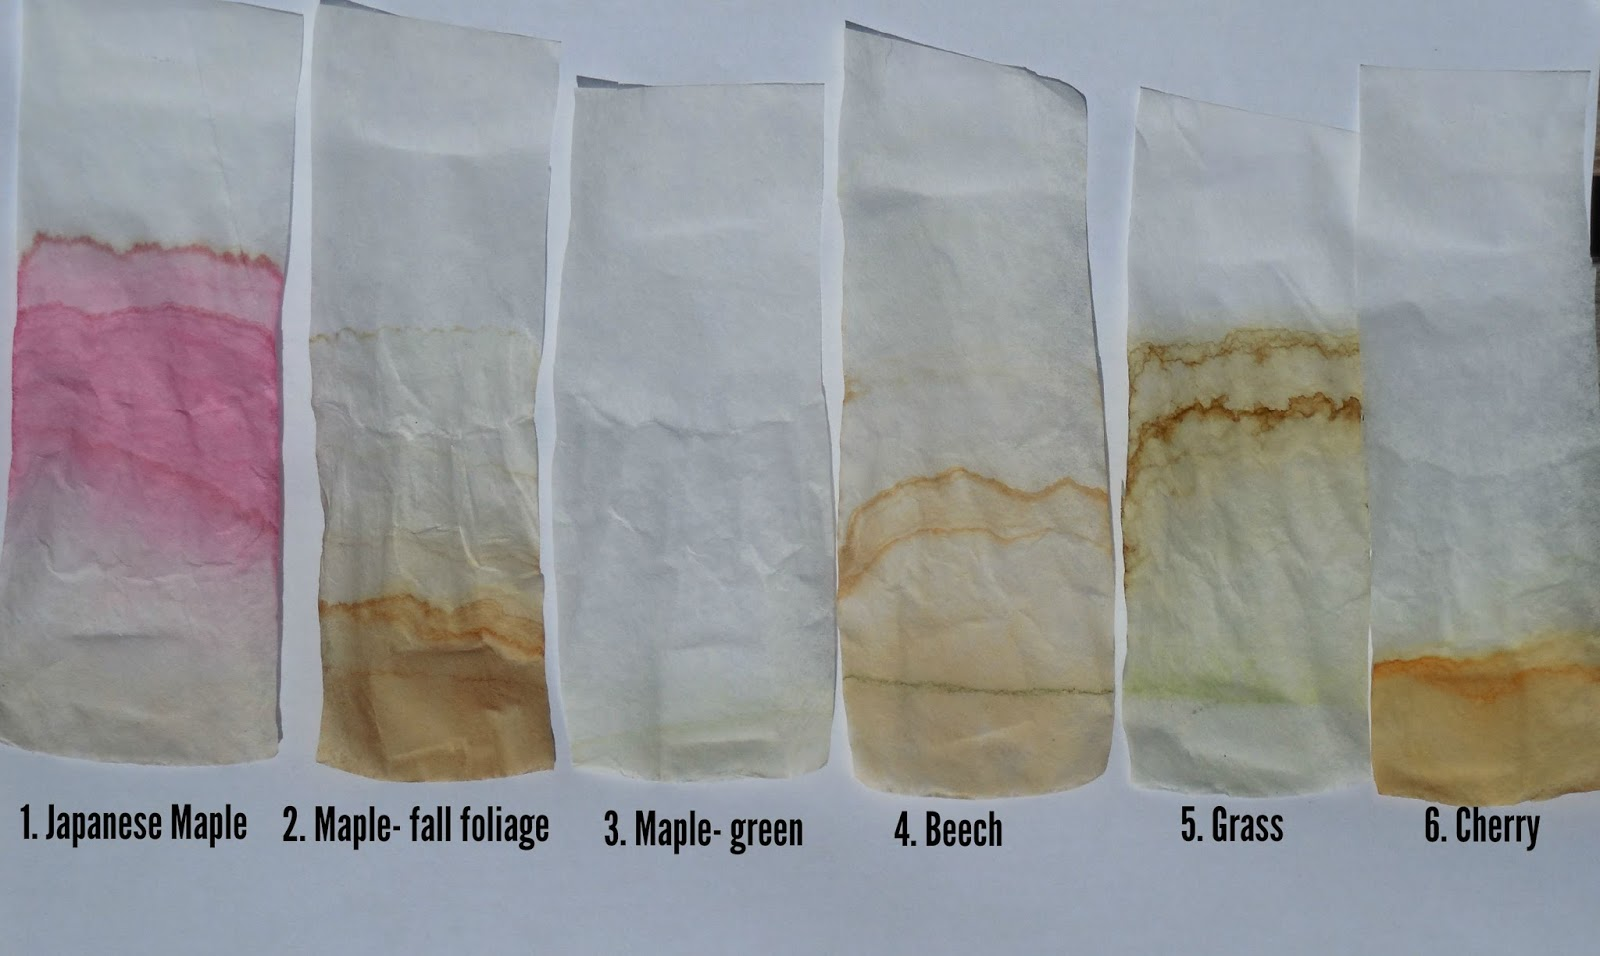 pigments in leaf chromatography The pigments involved in photosynthesis are embedded in the thylakoid   describe how to conduct chromatography to separate pigments from a leaf and.